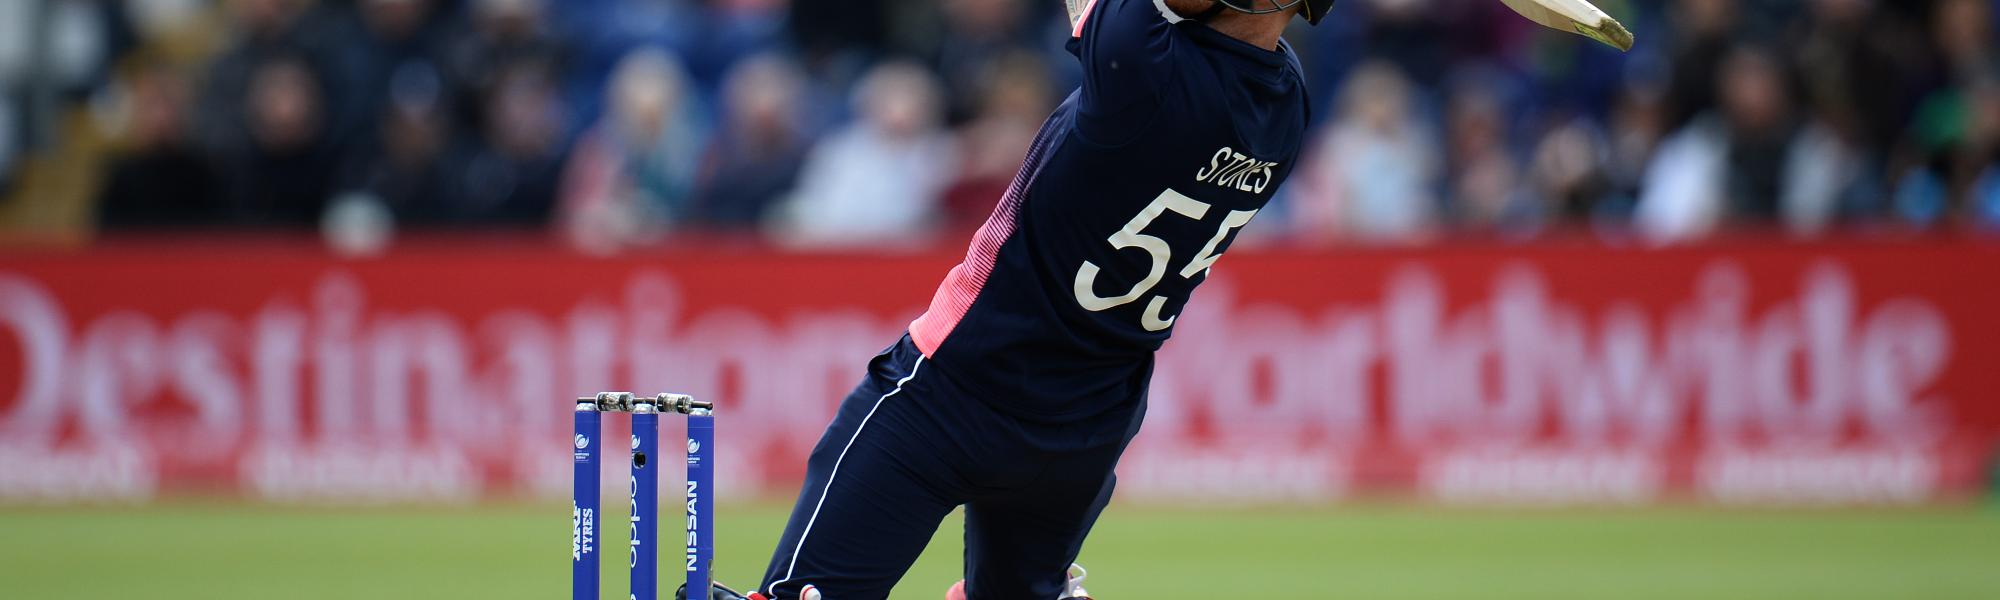 Ben Stokes hit 48 and took a crucial wicket in the host's last match versus New Zealand